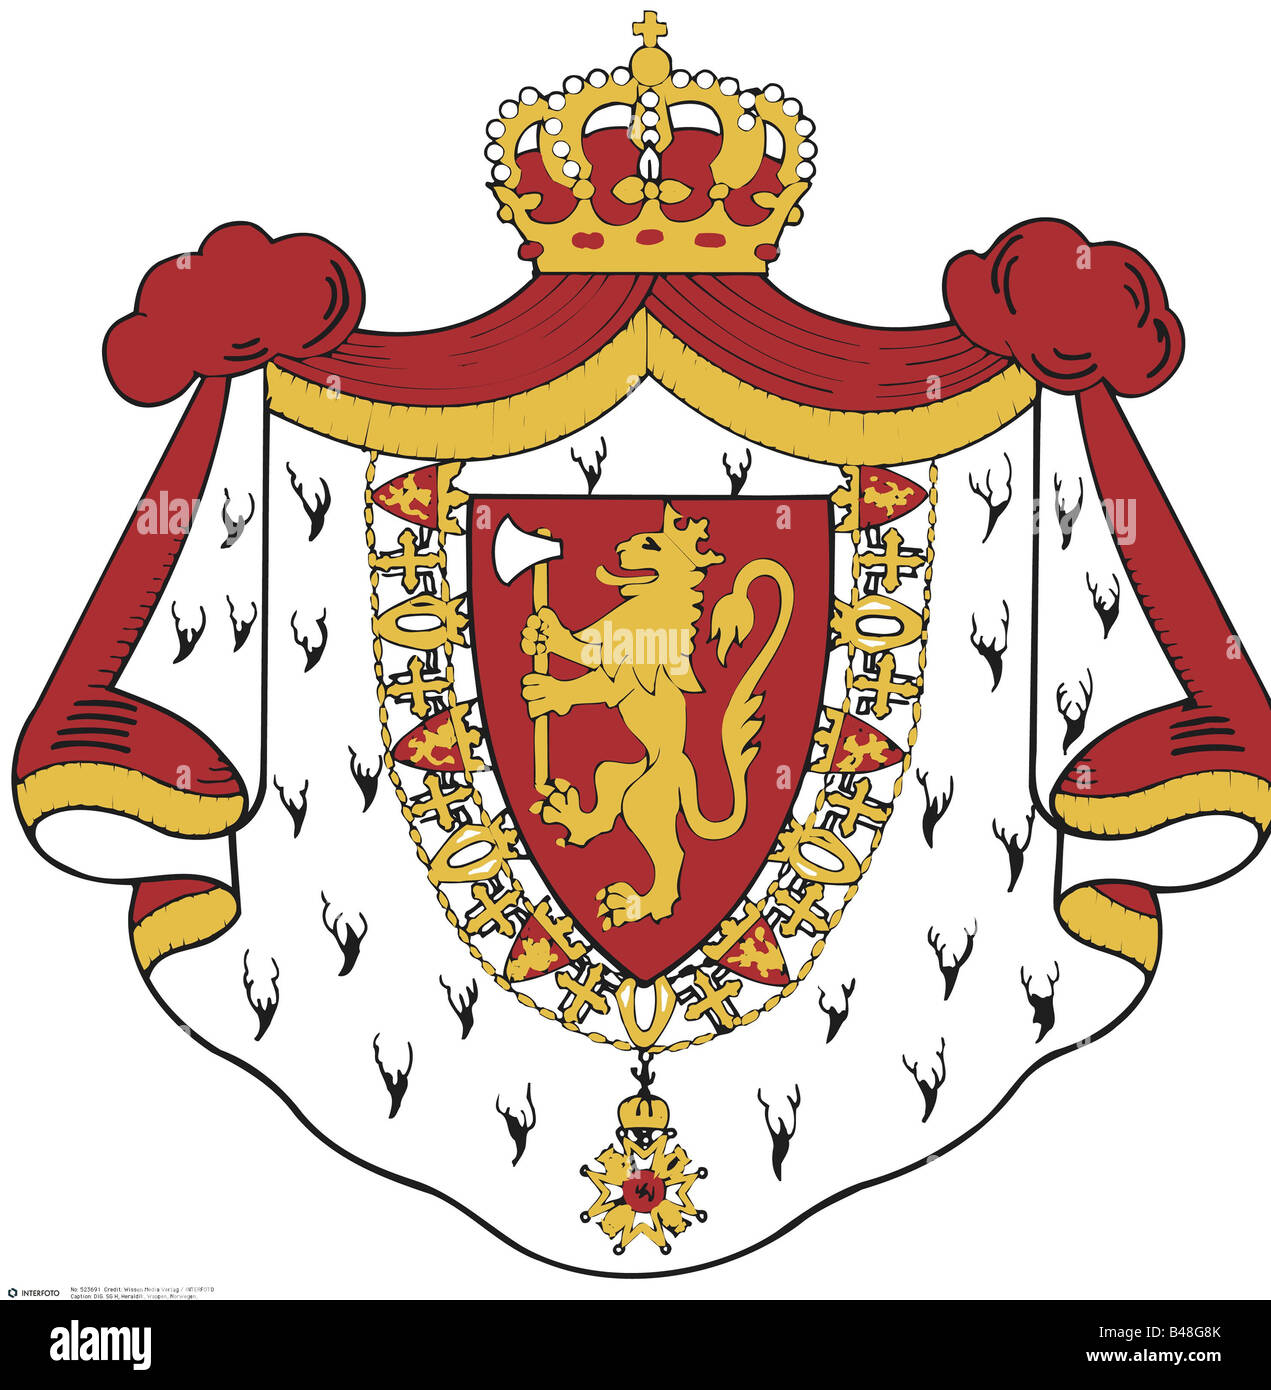 Coat Of Arms Of Norway Stock Photos & Coat Of Arms Of Norway Stock ...